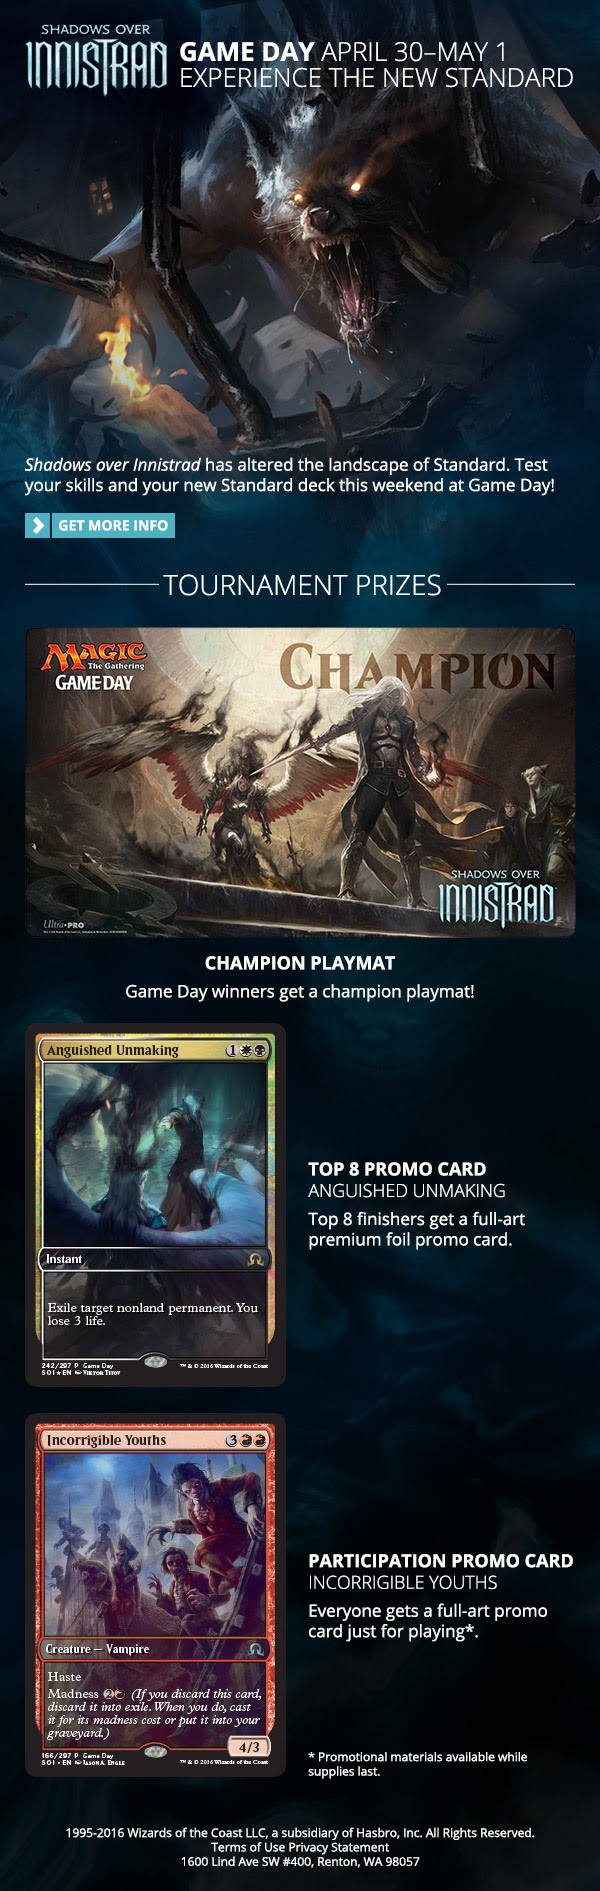 SHADOWS OVER INNISTRAD Game Day April 30-May 1.  Experience the new Standard